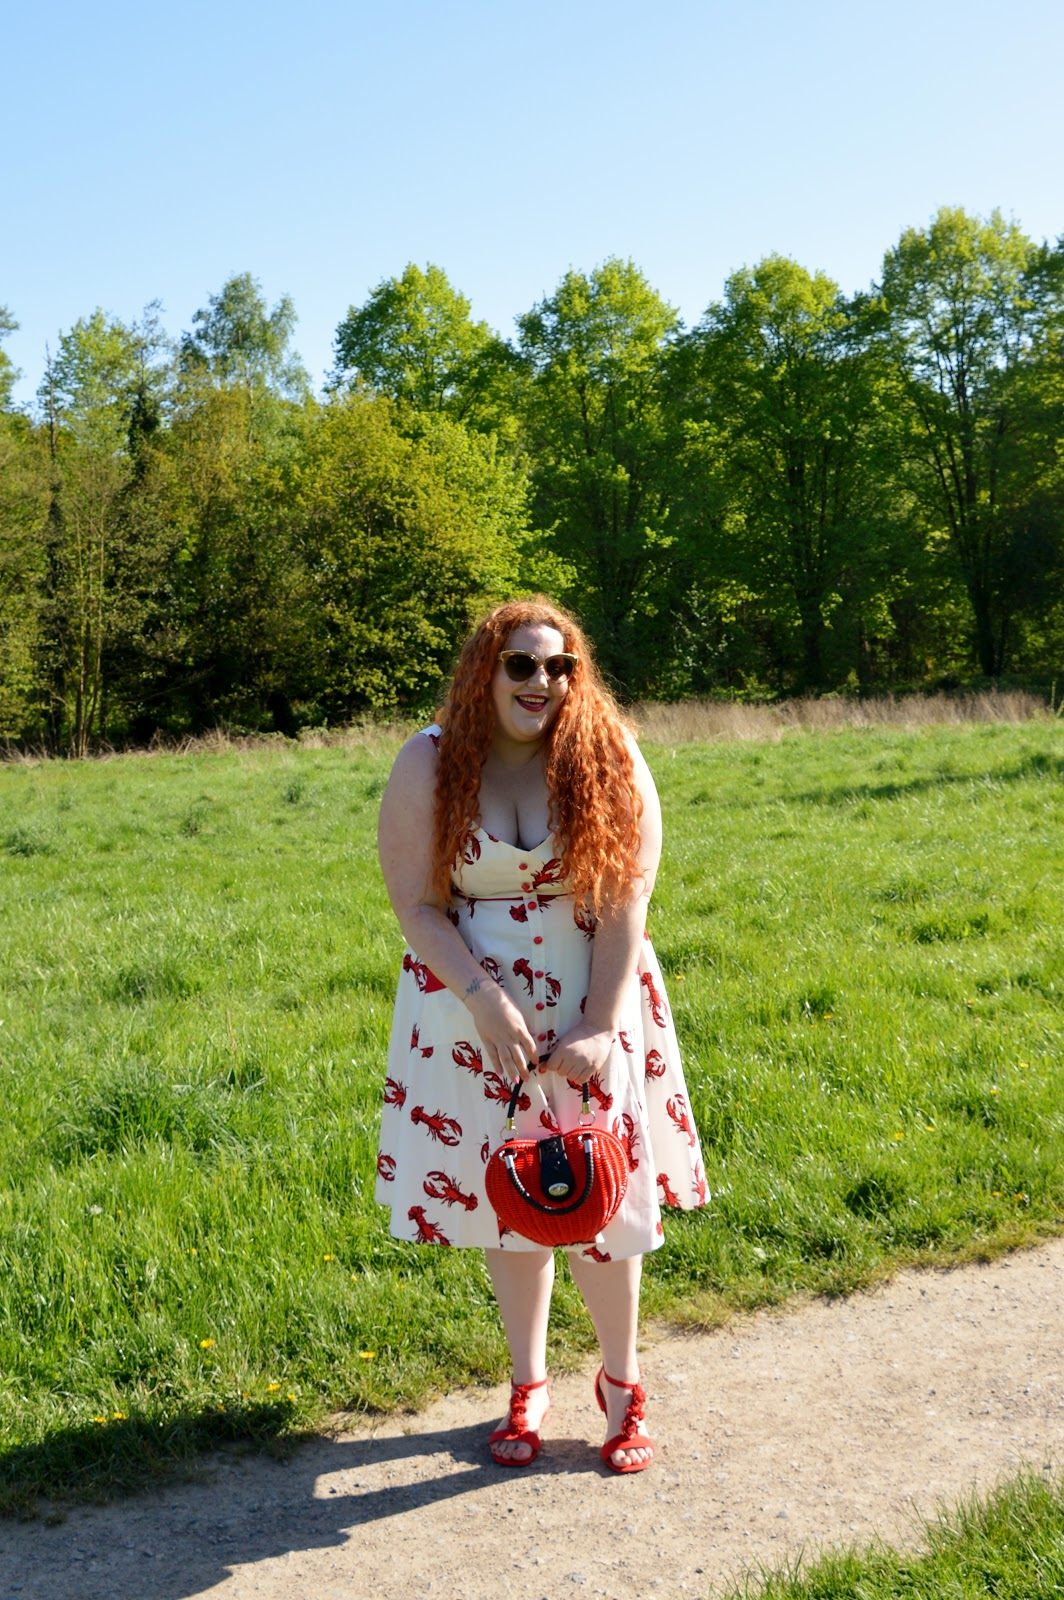 Cute print - check! Good fit - check! Summer vibes - check! These little  lobsters from Collectif are going to be one of my summer favourites, I can  tell.